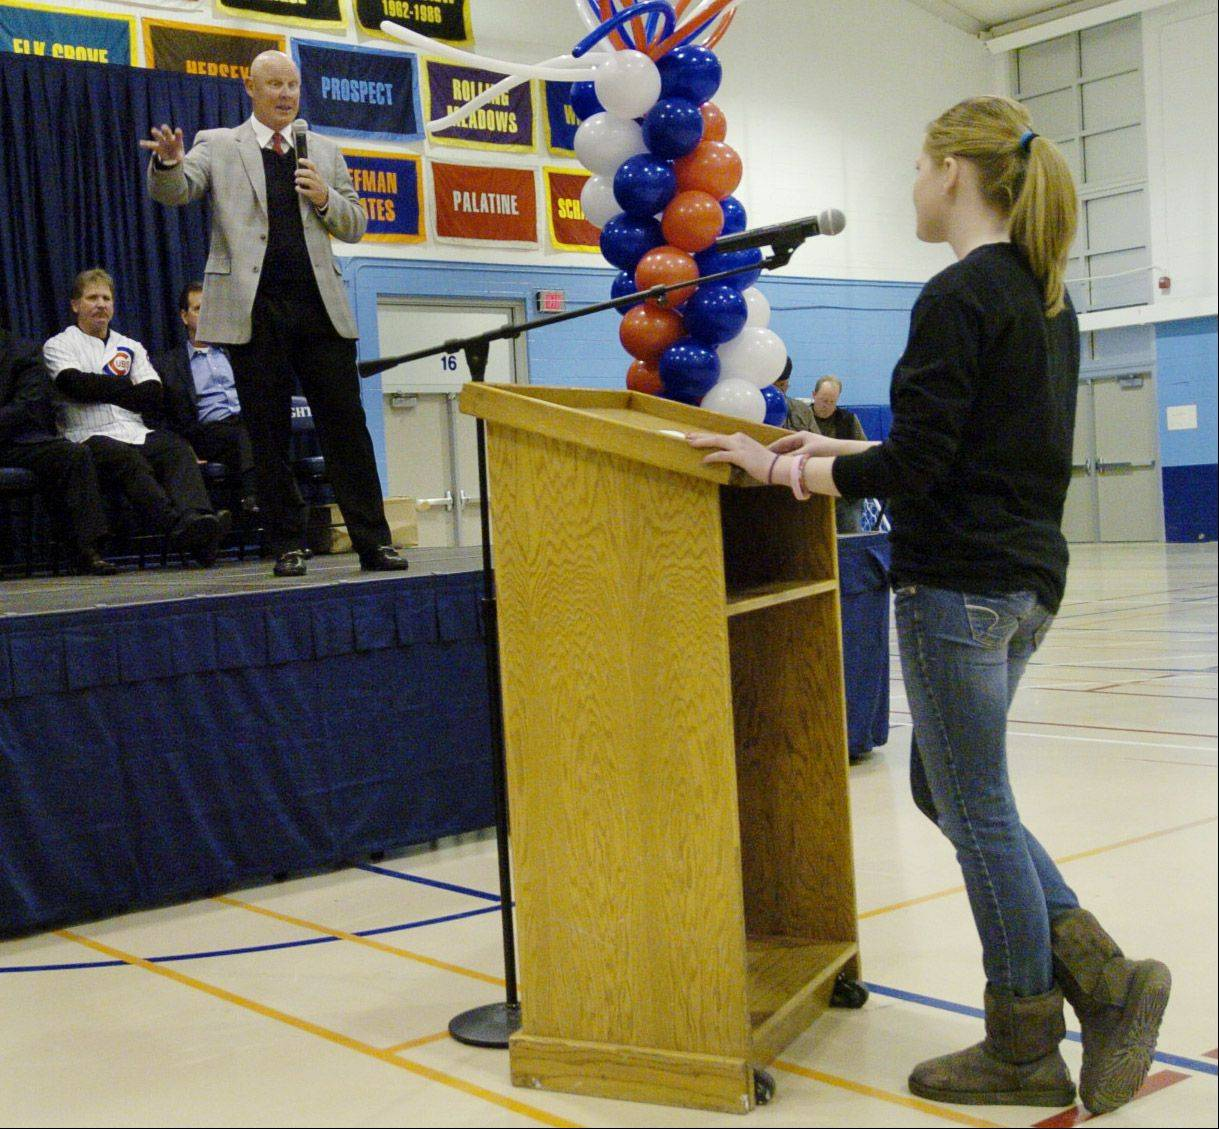 Cubs manager Mike Quade fields a question from sophomore Maggie Devereux during an assembly while visiting his old high school, Prospect High.